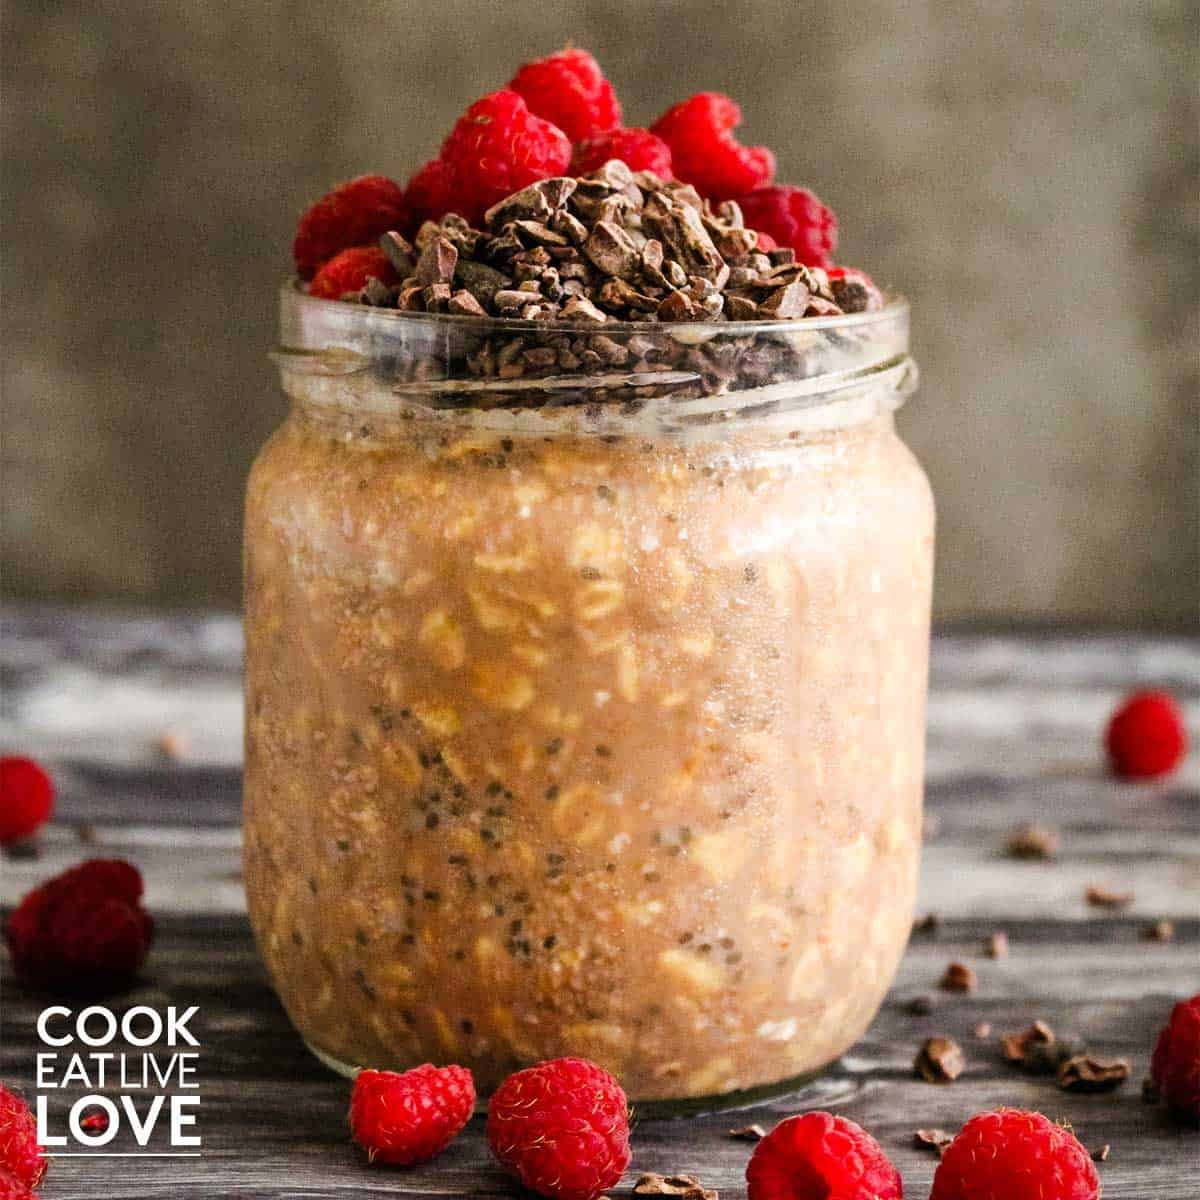 Chocolate raspberry overnight oats are ready to eat in a jar.